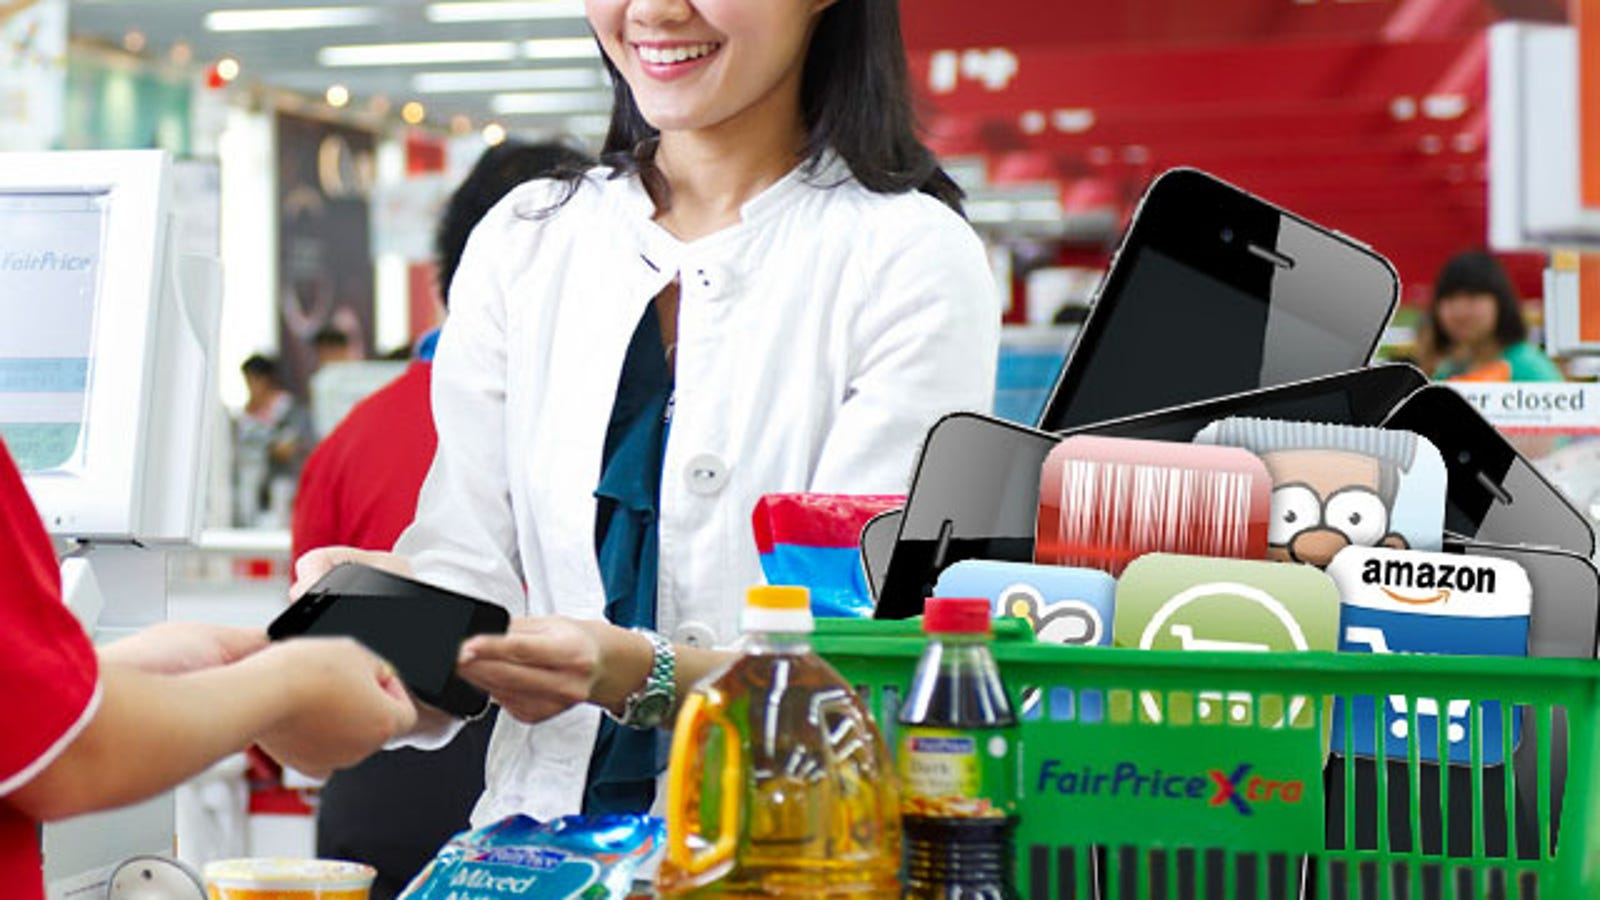 The Best Shopping Apps for iPhone